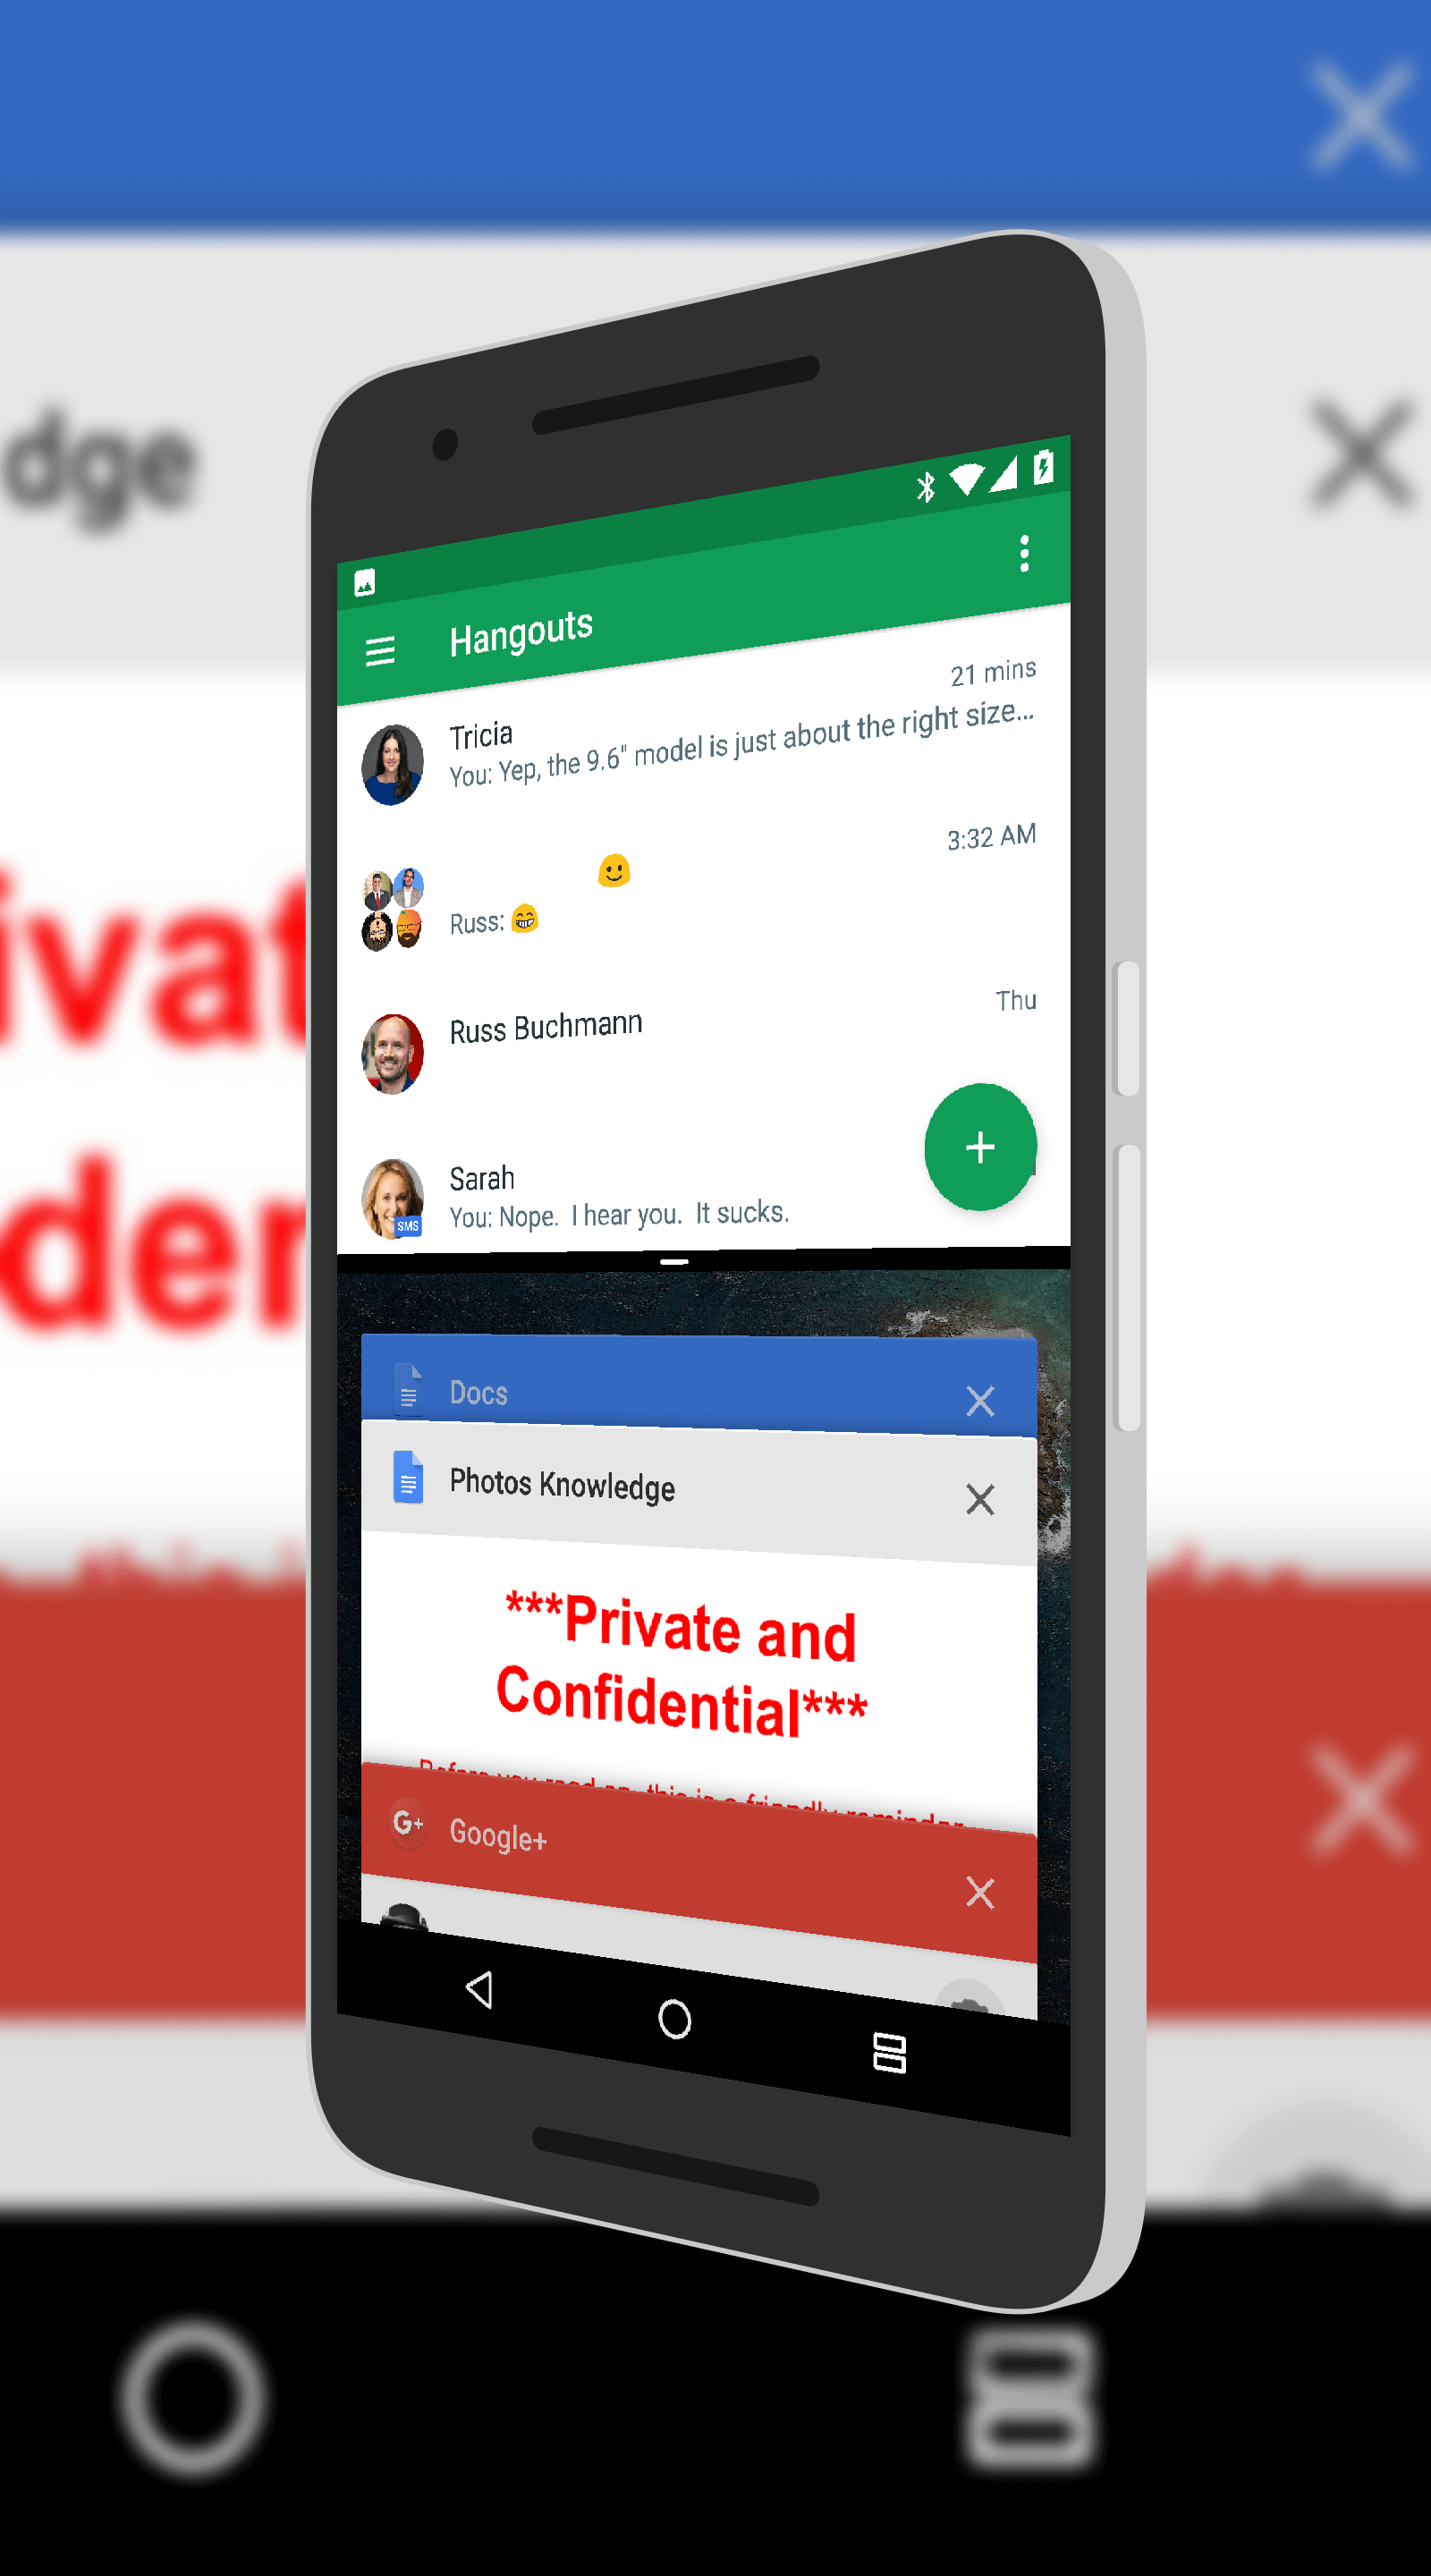 How To Enable and Use Multi-Window View in Android Nougat